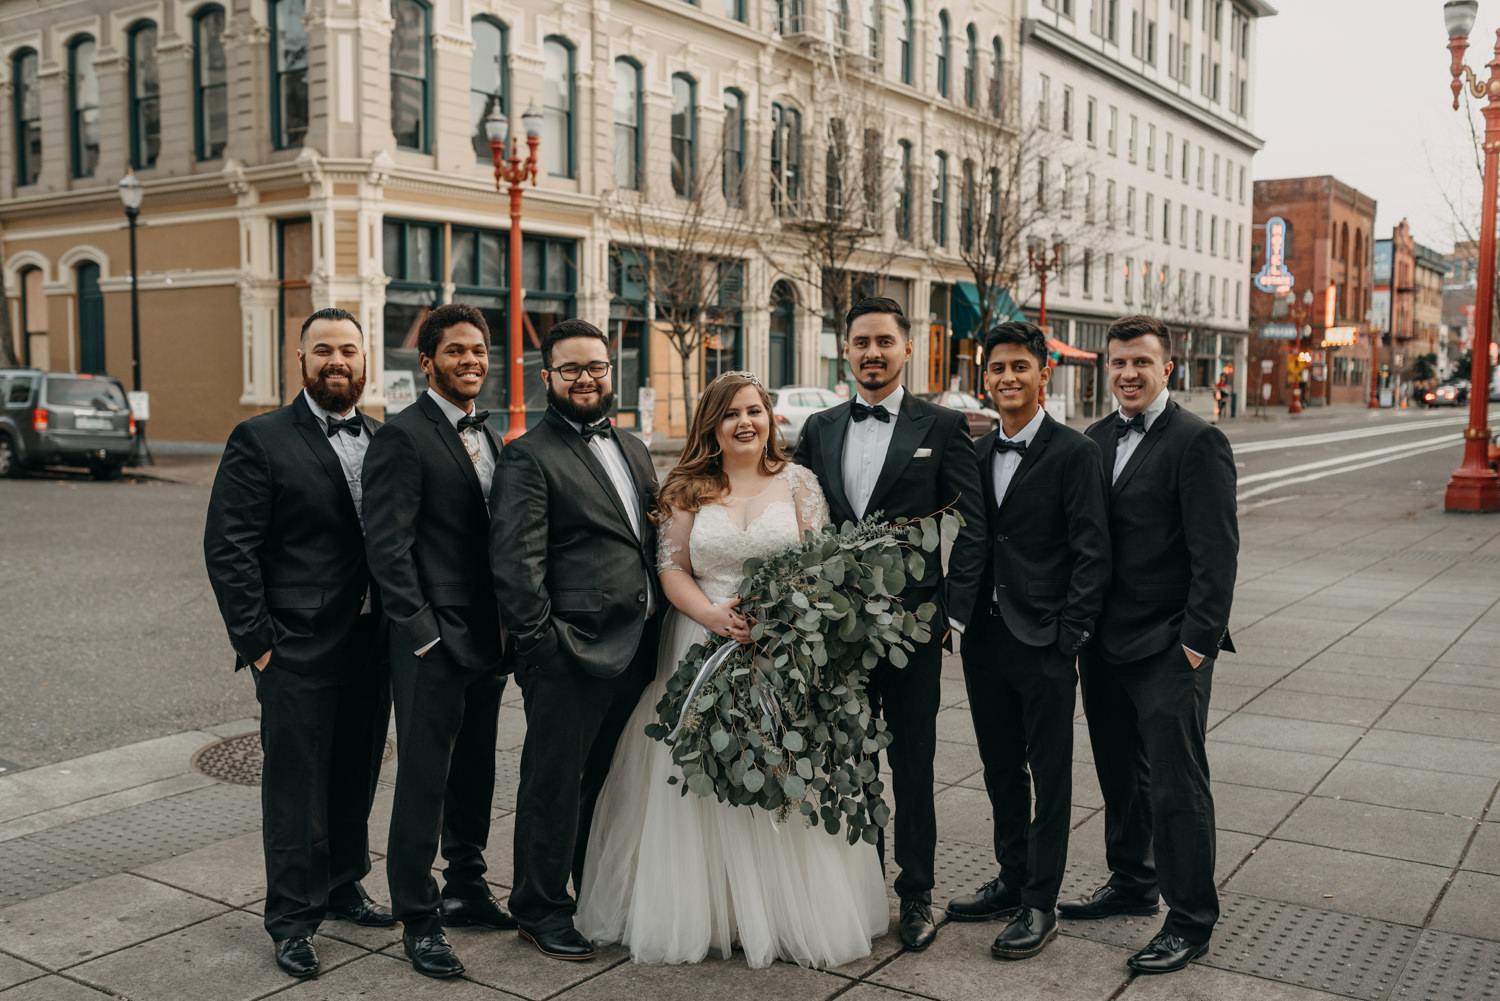 64downtown-Portland-Wedding-society-hotel.jpg